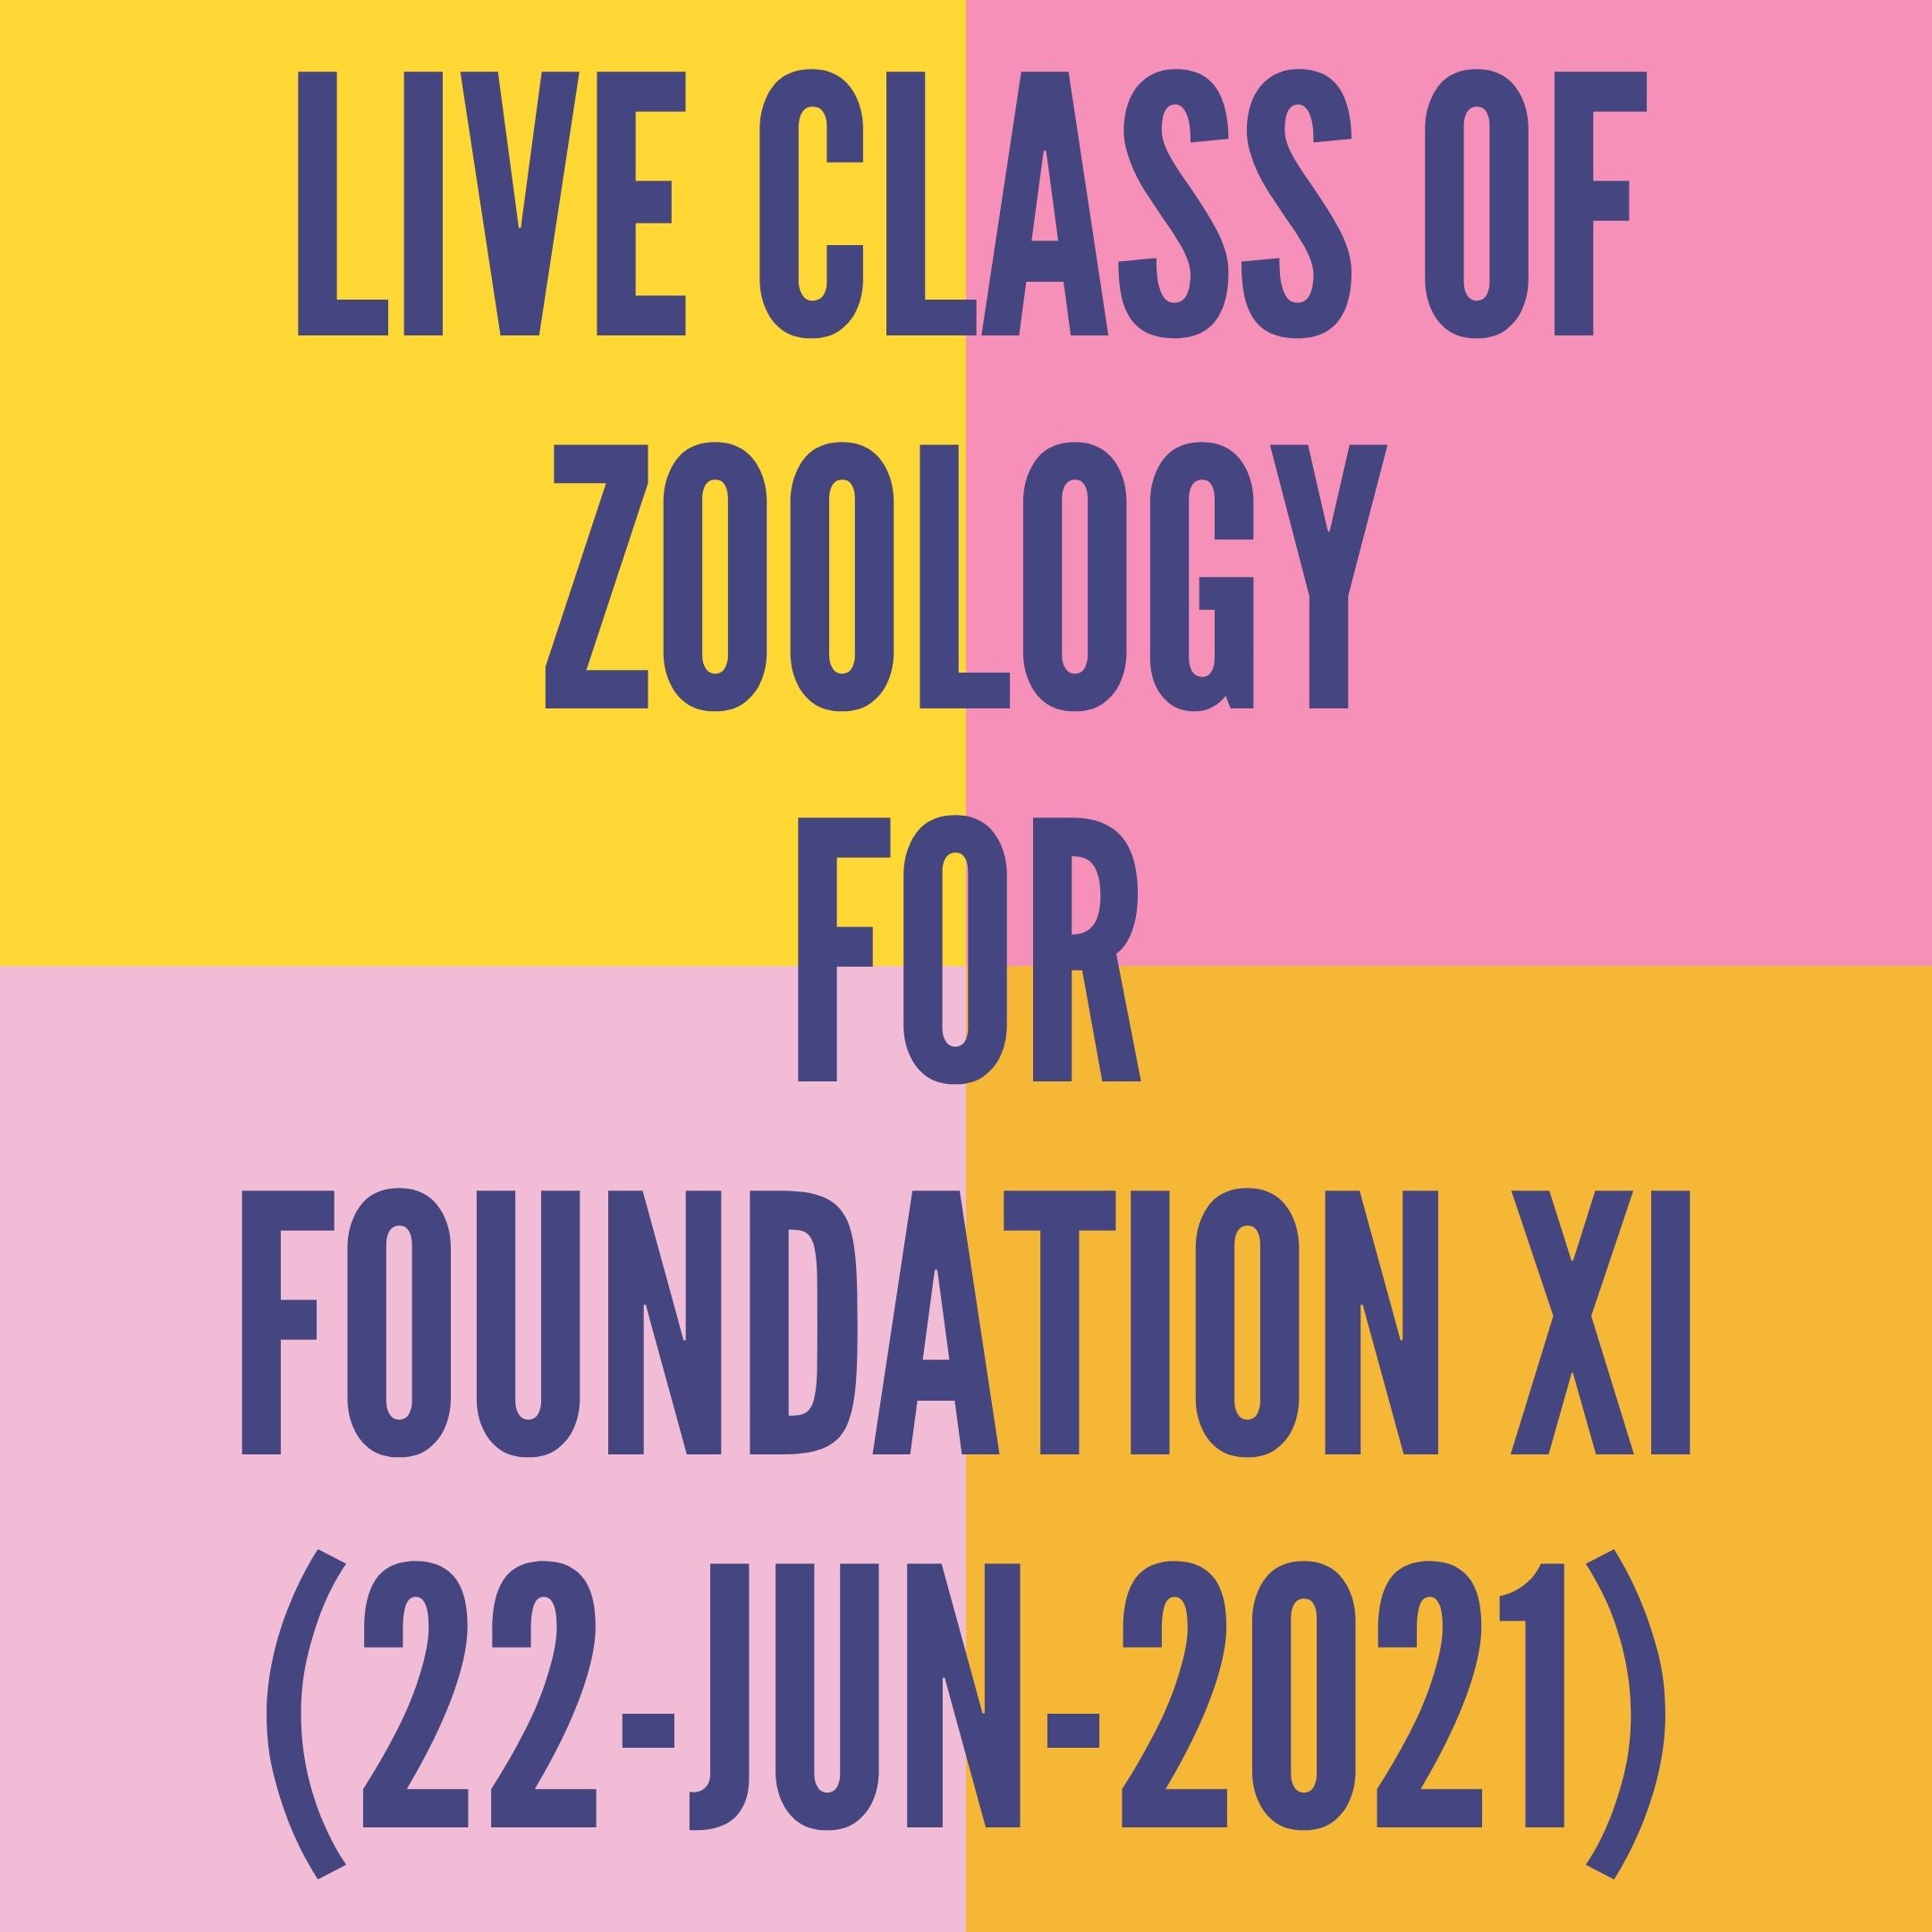 LIVE CLASS OF ZOOLOGY FOR FOUNDATION XI (22-JUN-2021) DIGESTIVE SYSTEM